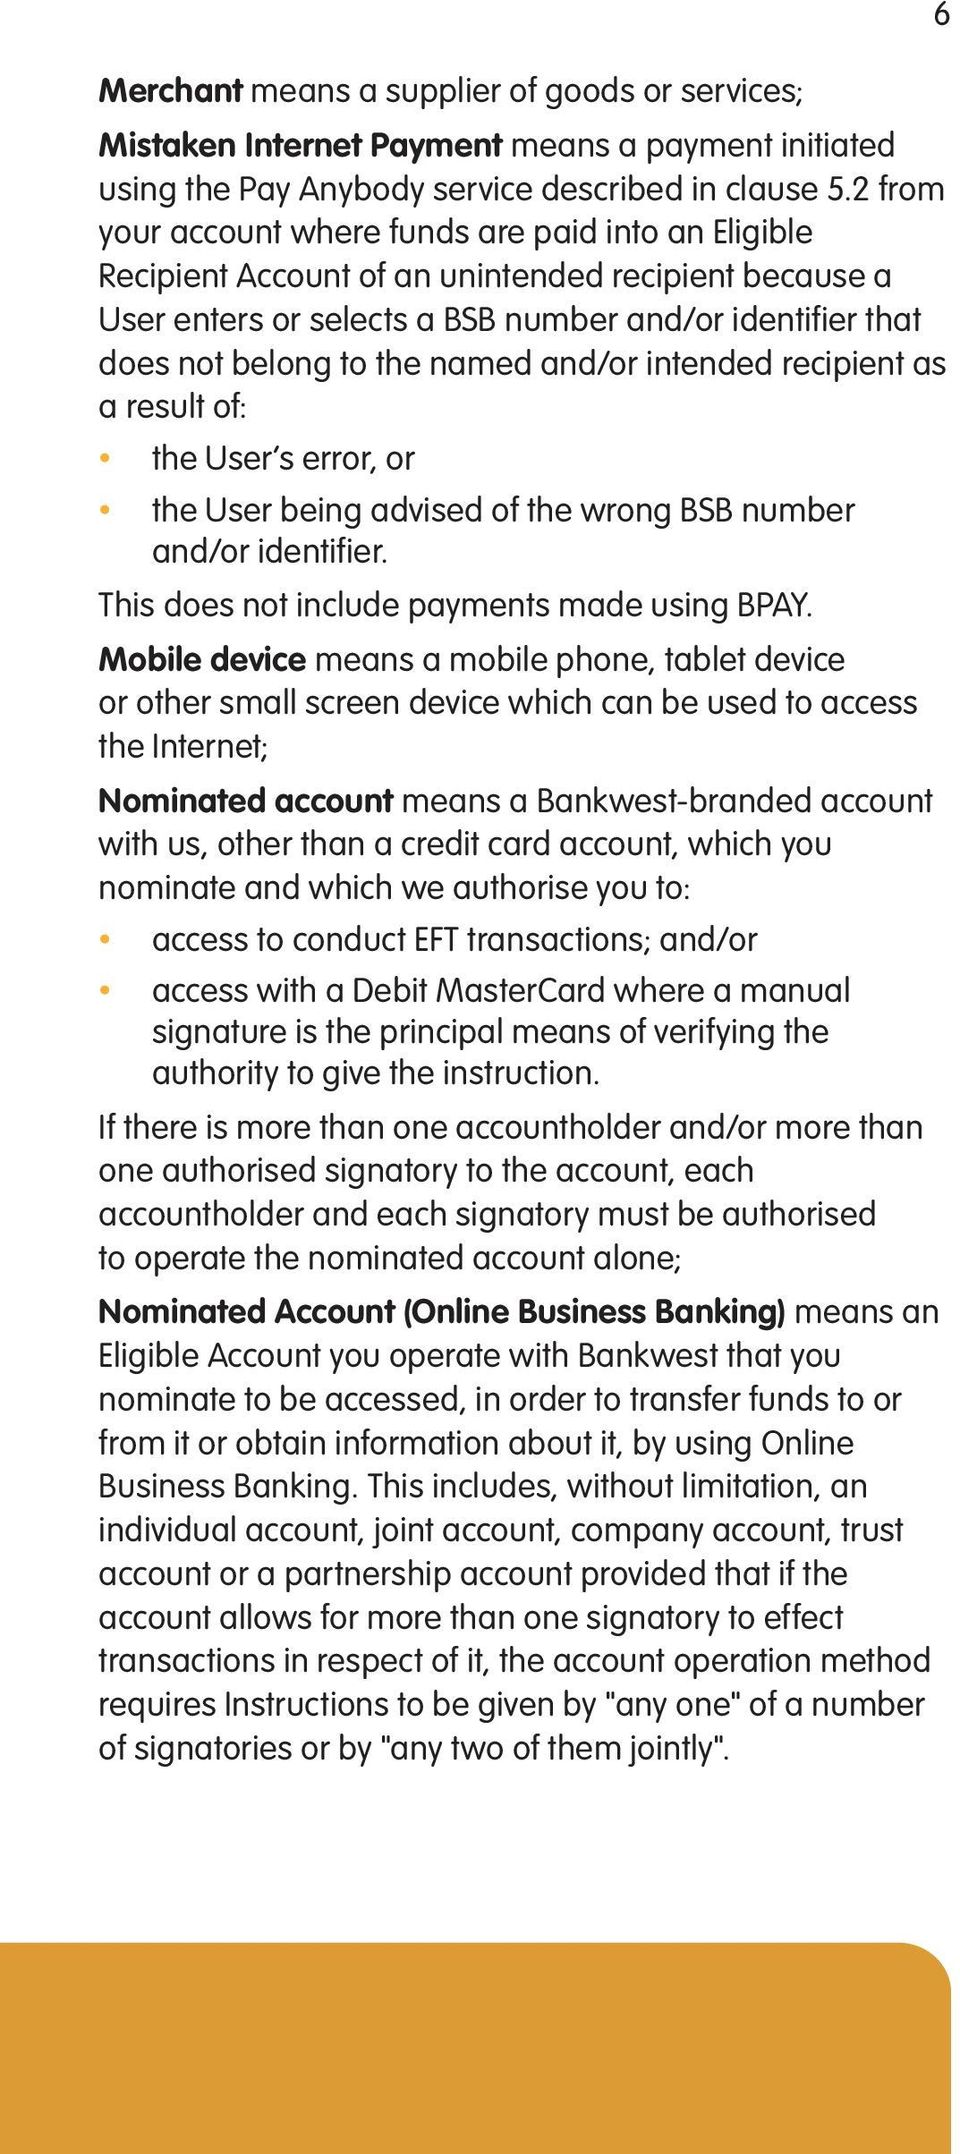 named and/or intended recipient as a result of: the User s error, or the User being advised of the wrong BSB number and/or identifier. This does not include payments made using BPAY.